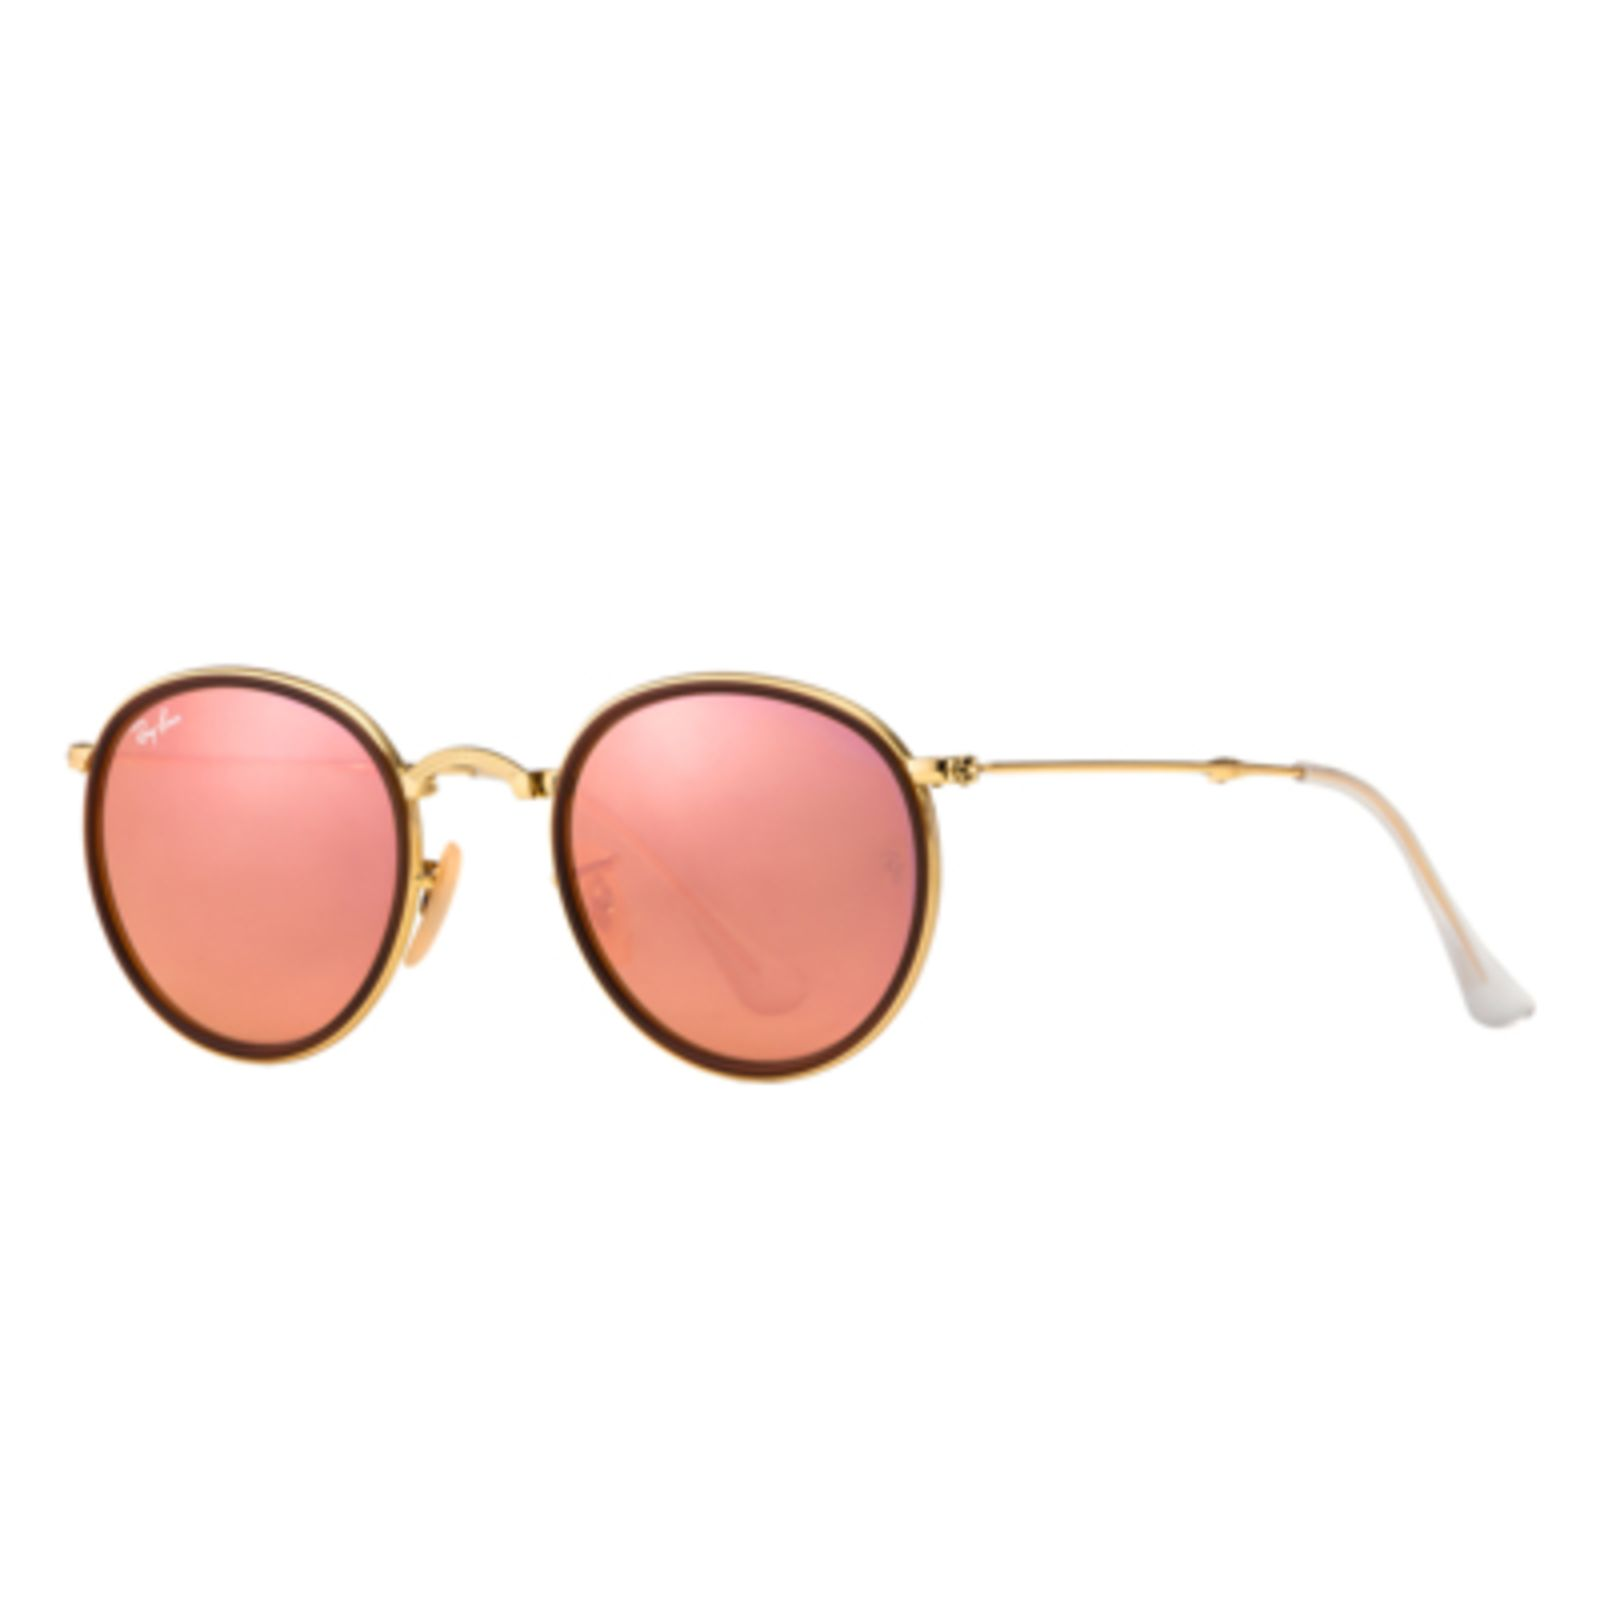 75b2e72e8 Óculos De Sol Ray-Ban Round RB3517 Dobrável Ouro | Products | Ray ...